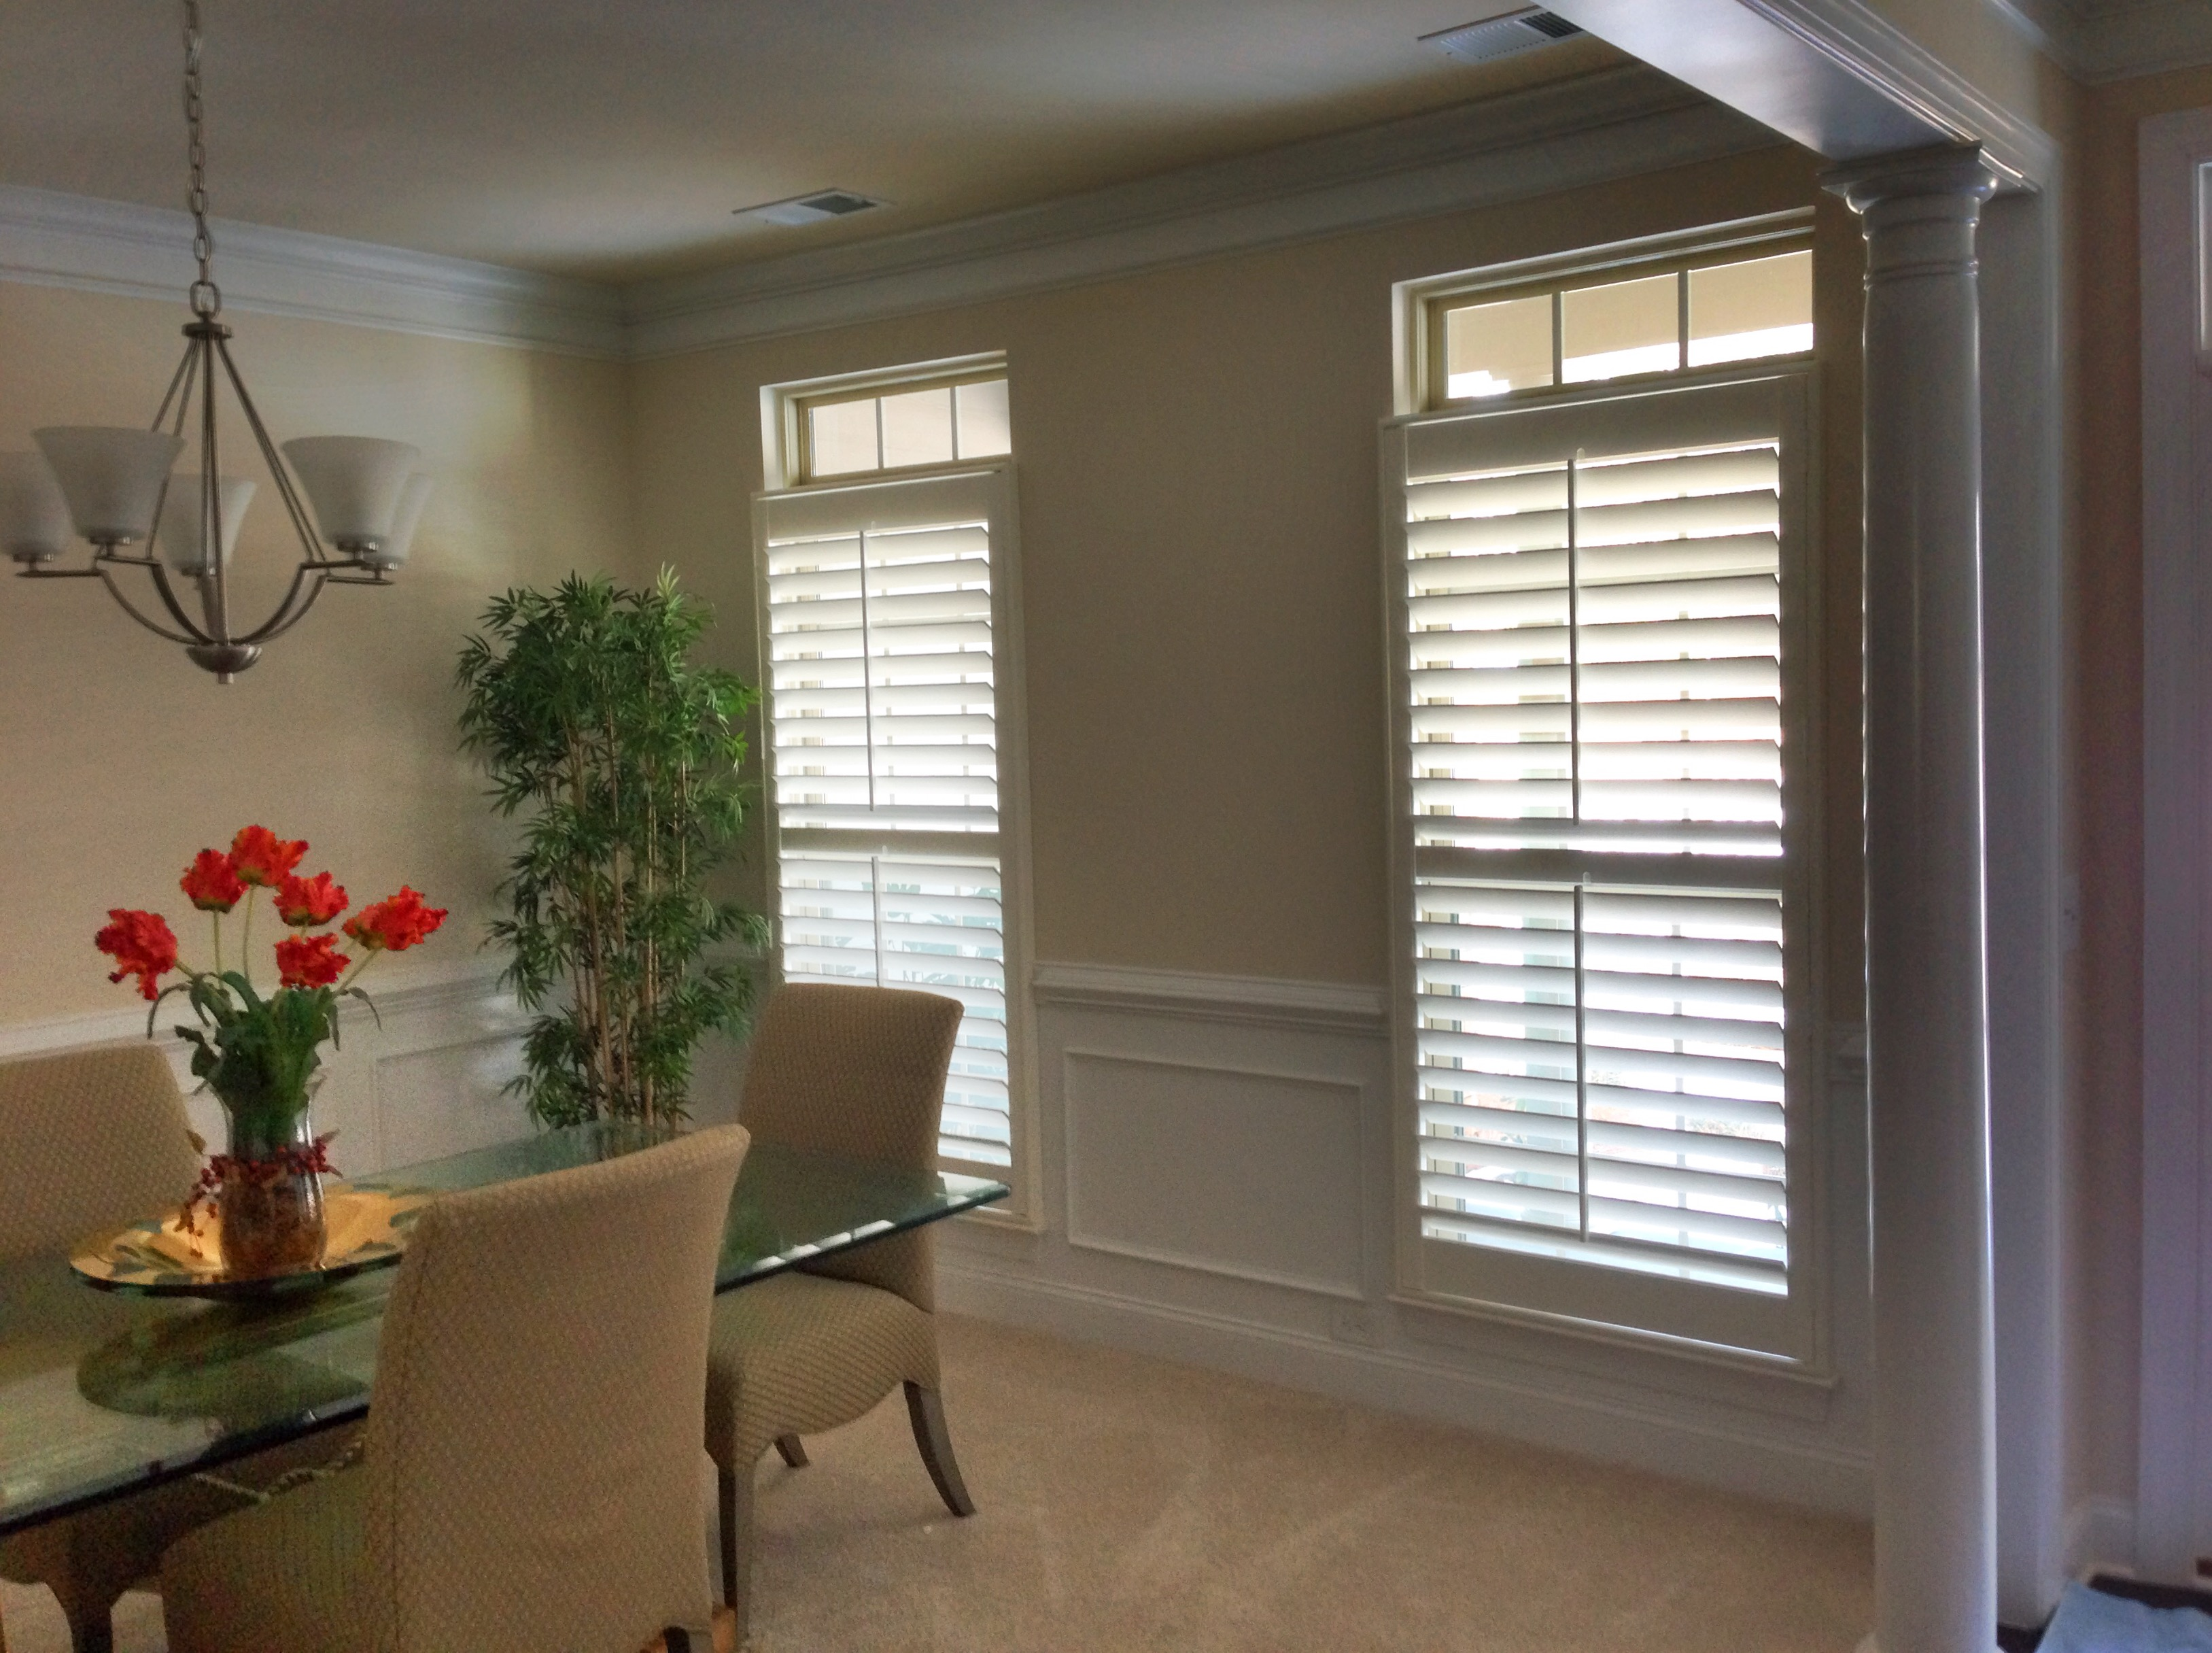 in b panel buckner shades ve norman zoom read shutters and blinds done gallery more we what r